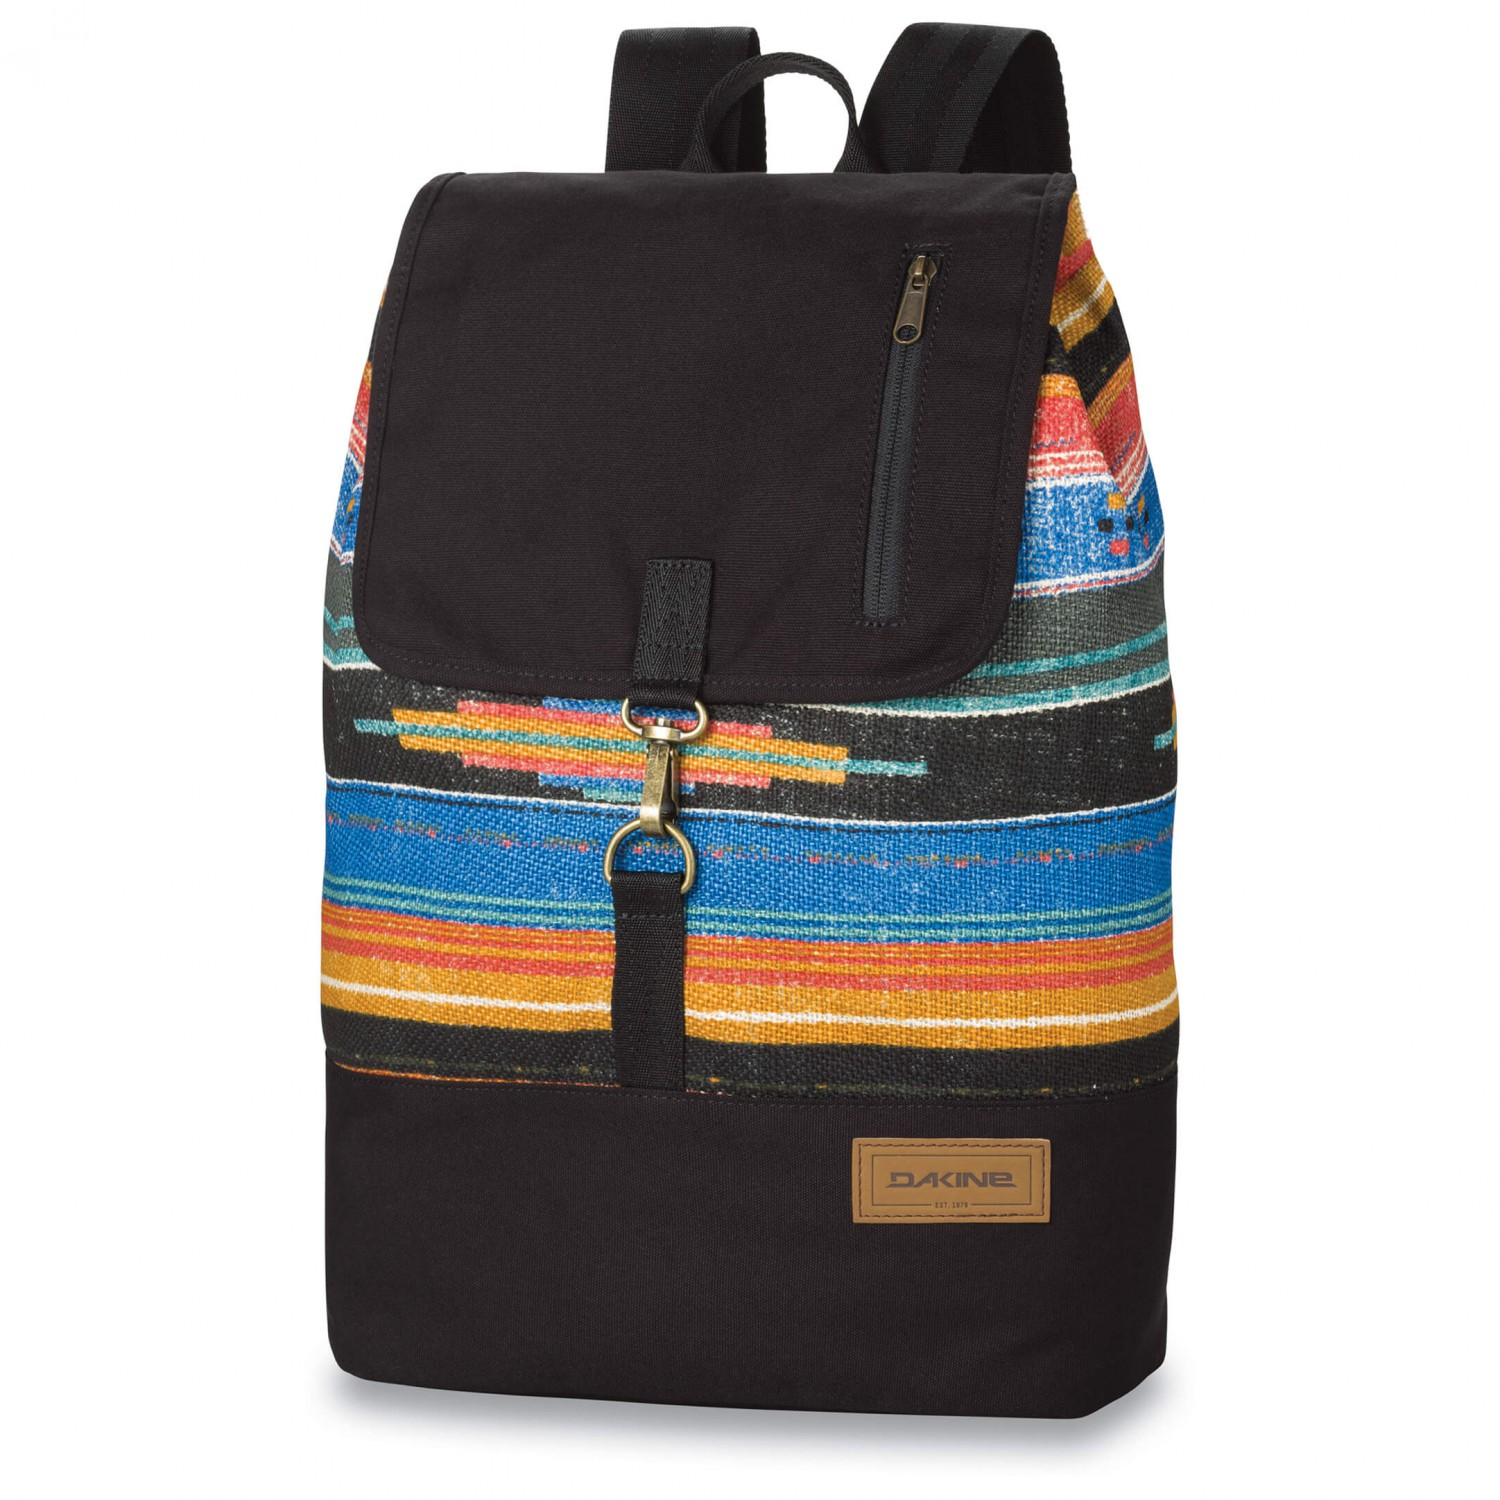 ae32f1cf6f5a6 Dakine - Women s Ryder 24L - Sac à dos léger taille One Size, noir